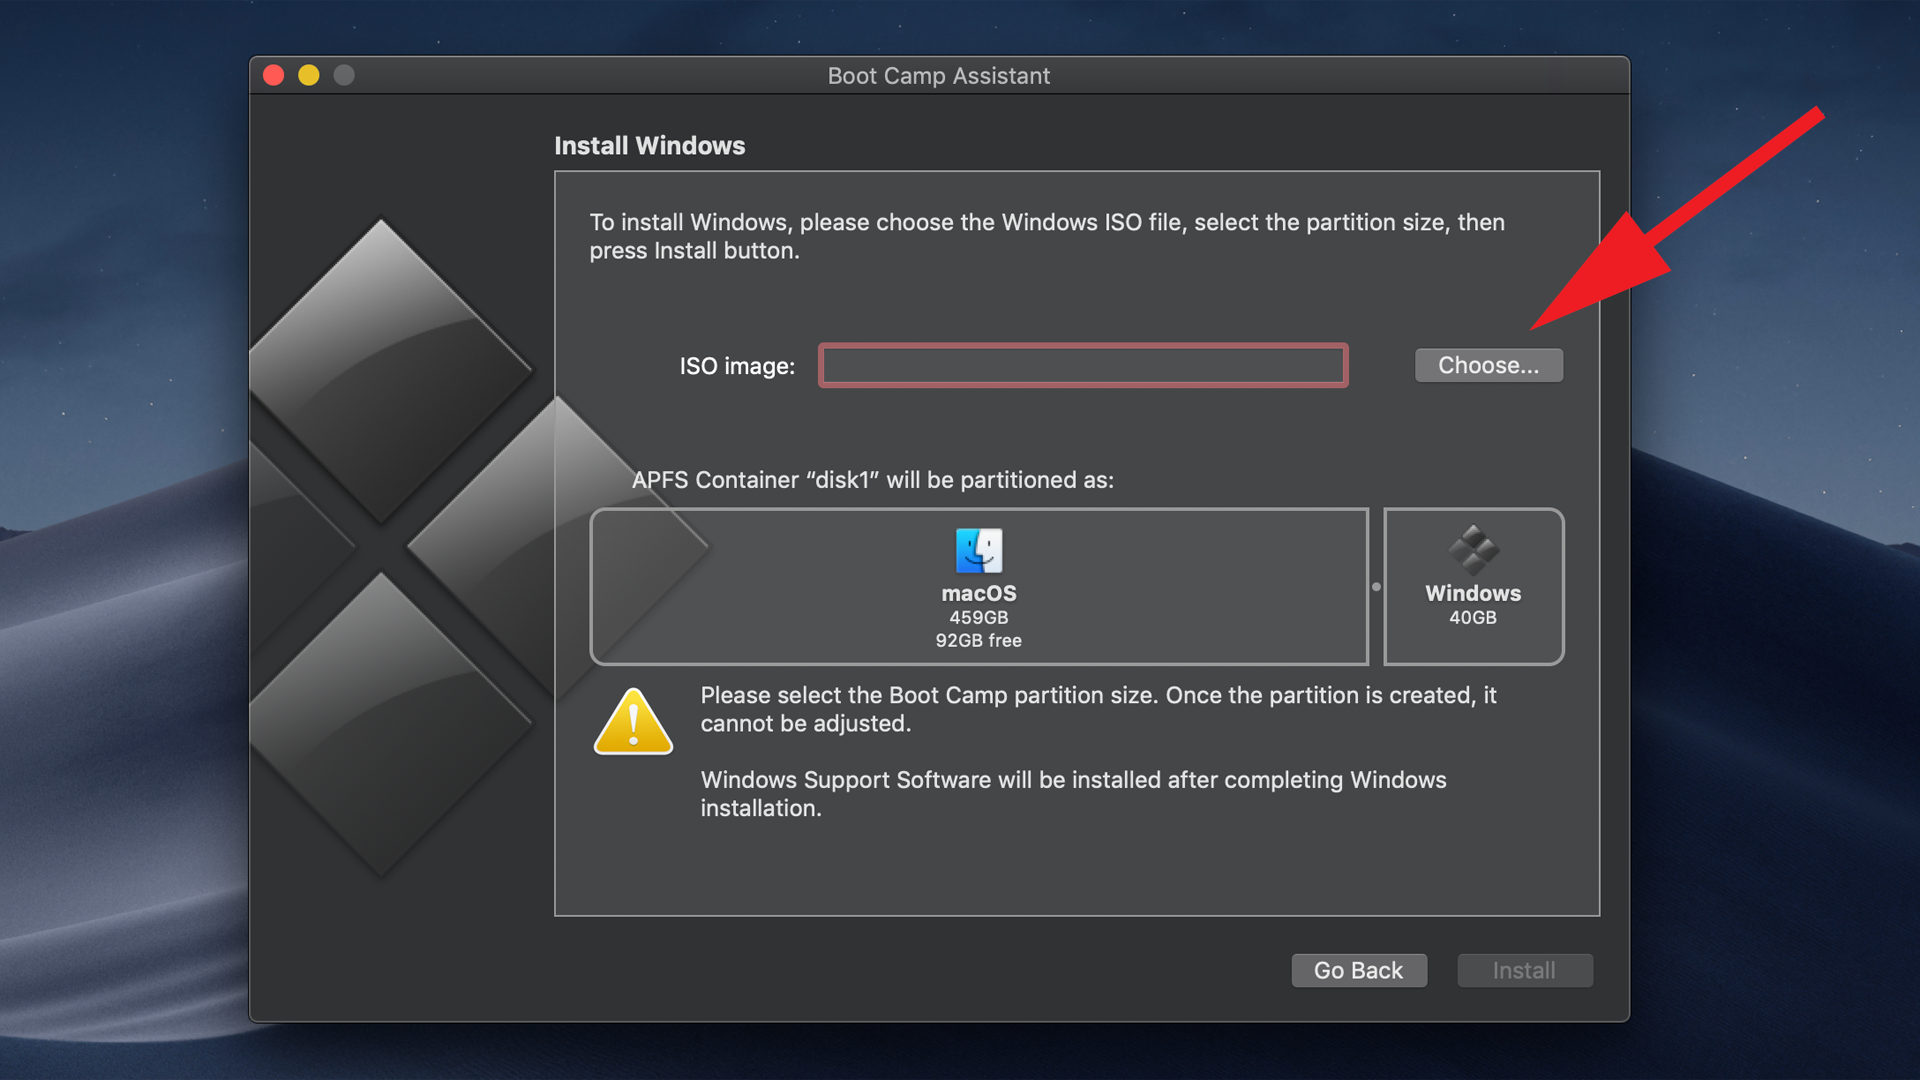 How to install Windows on a Mac